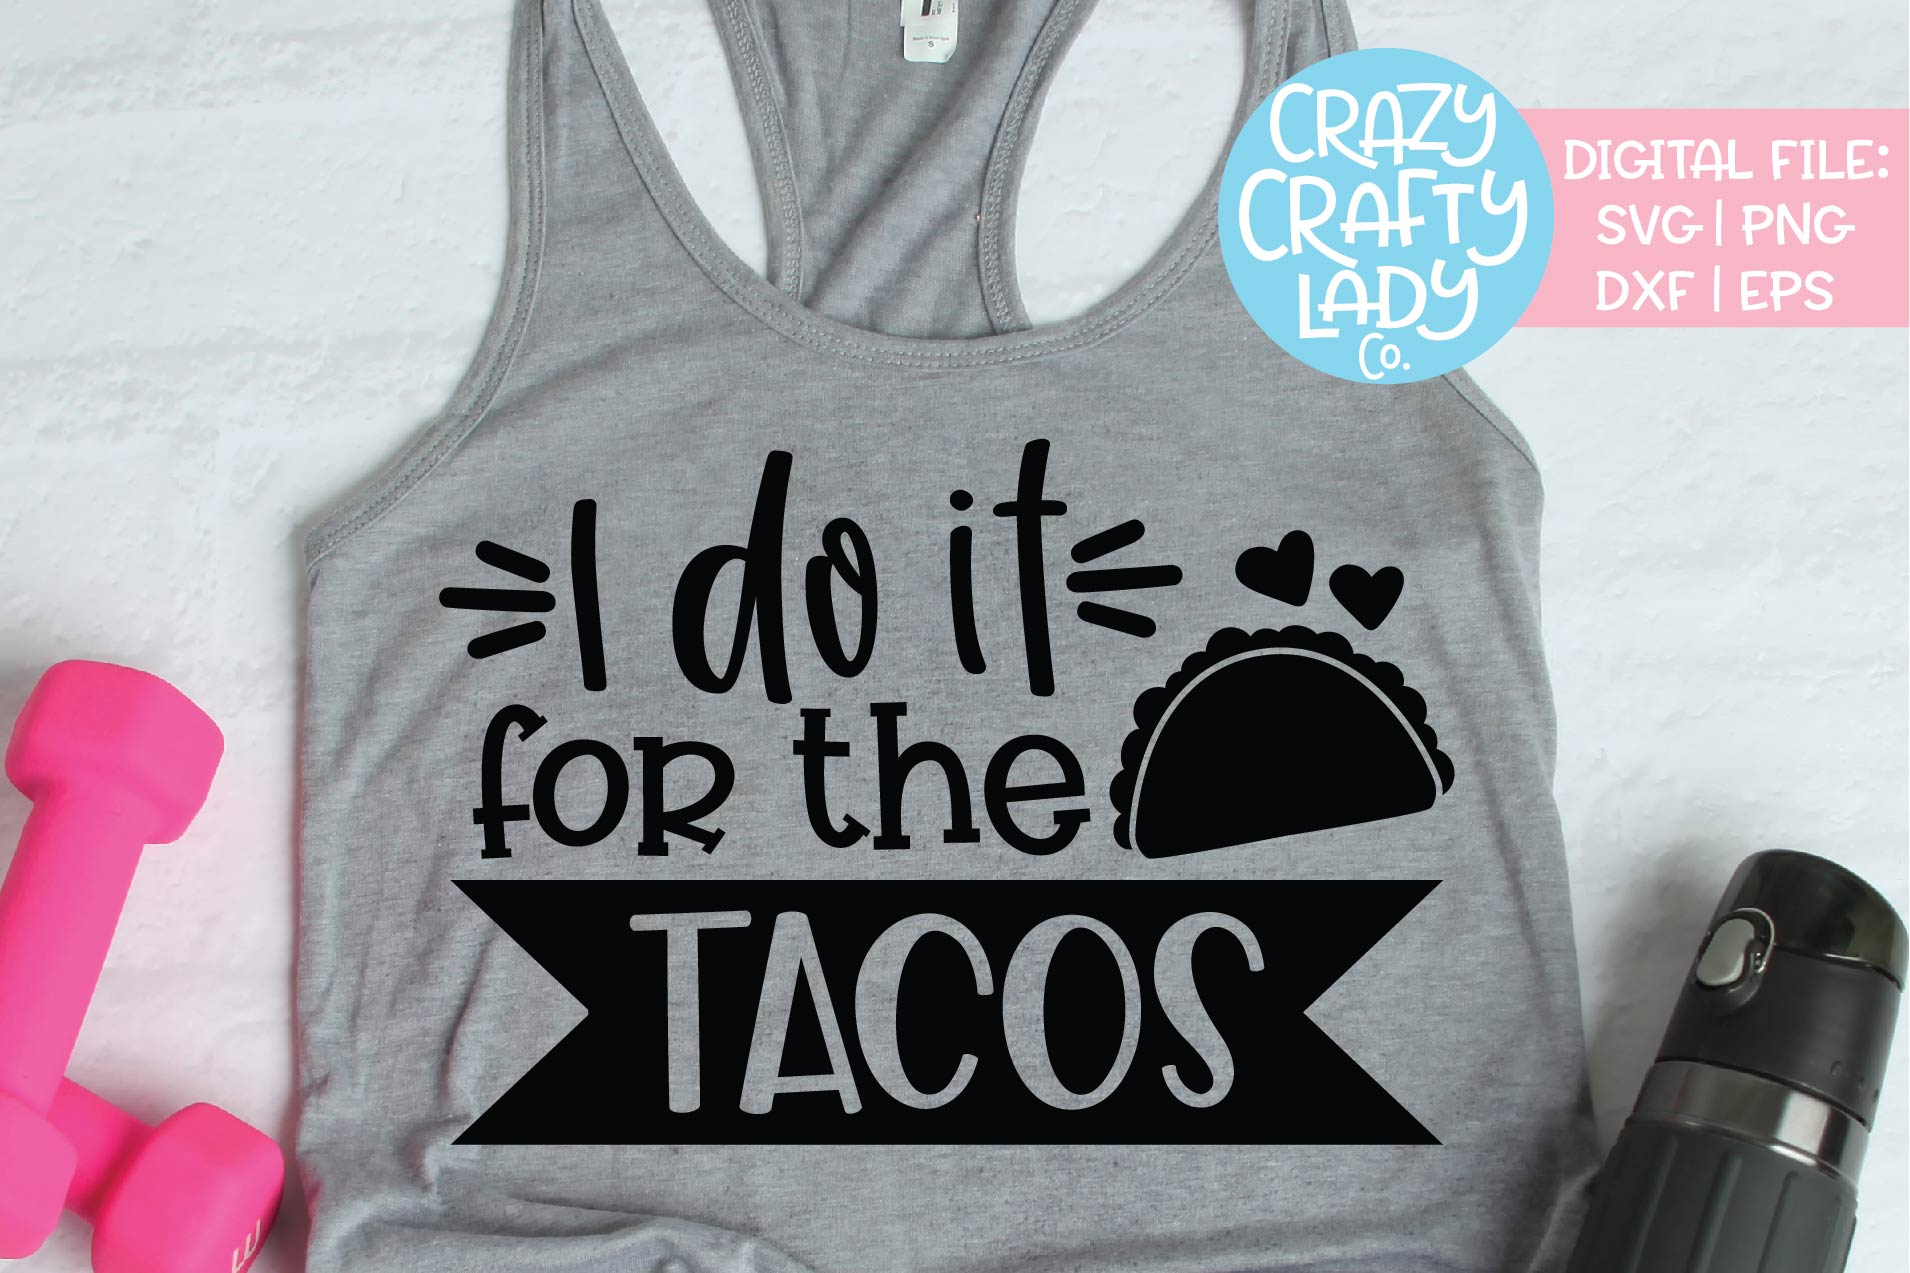 I Do It for the Tacos Workout SVG DXF EPS PNG Cut File example image 1